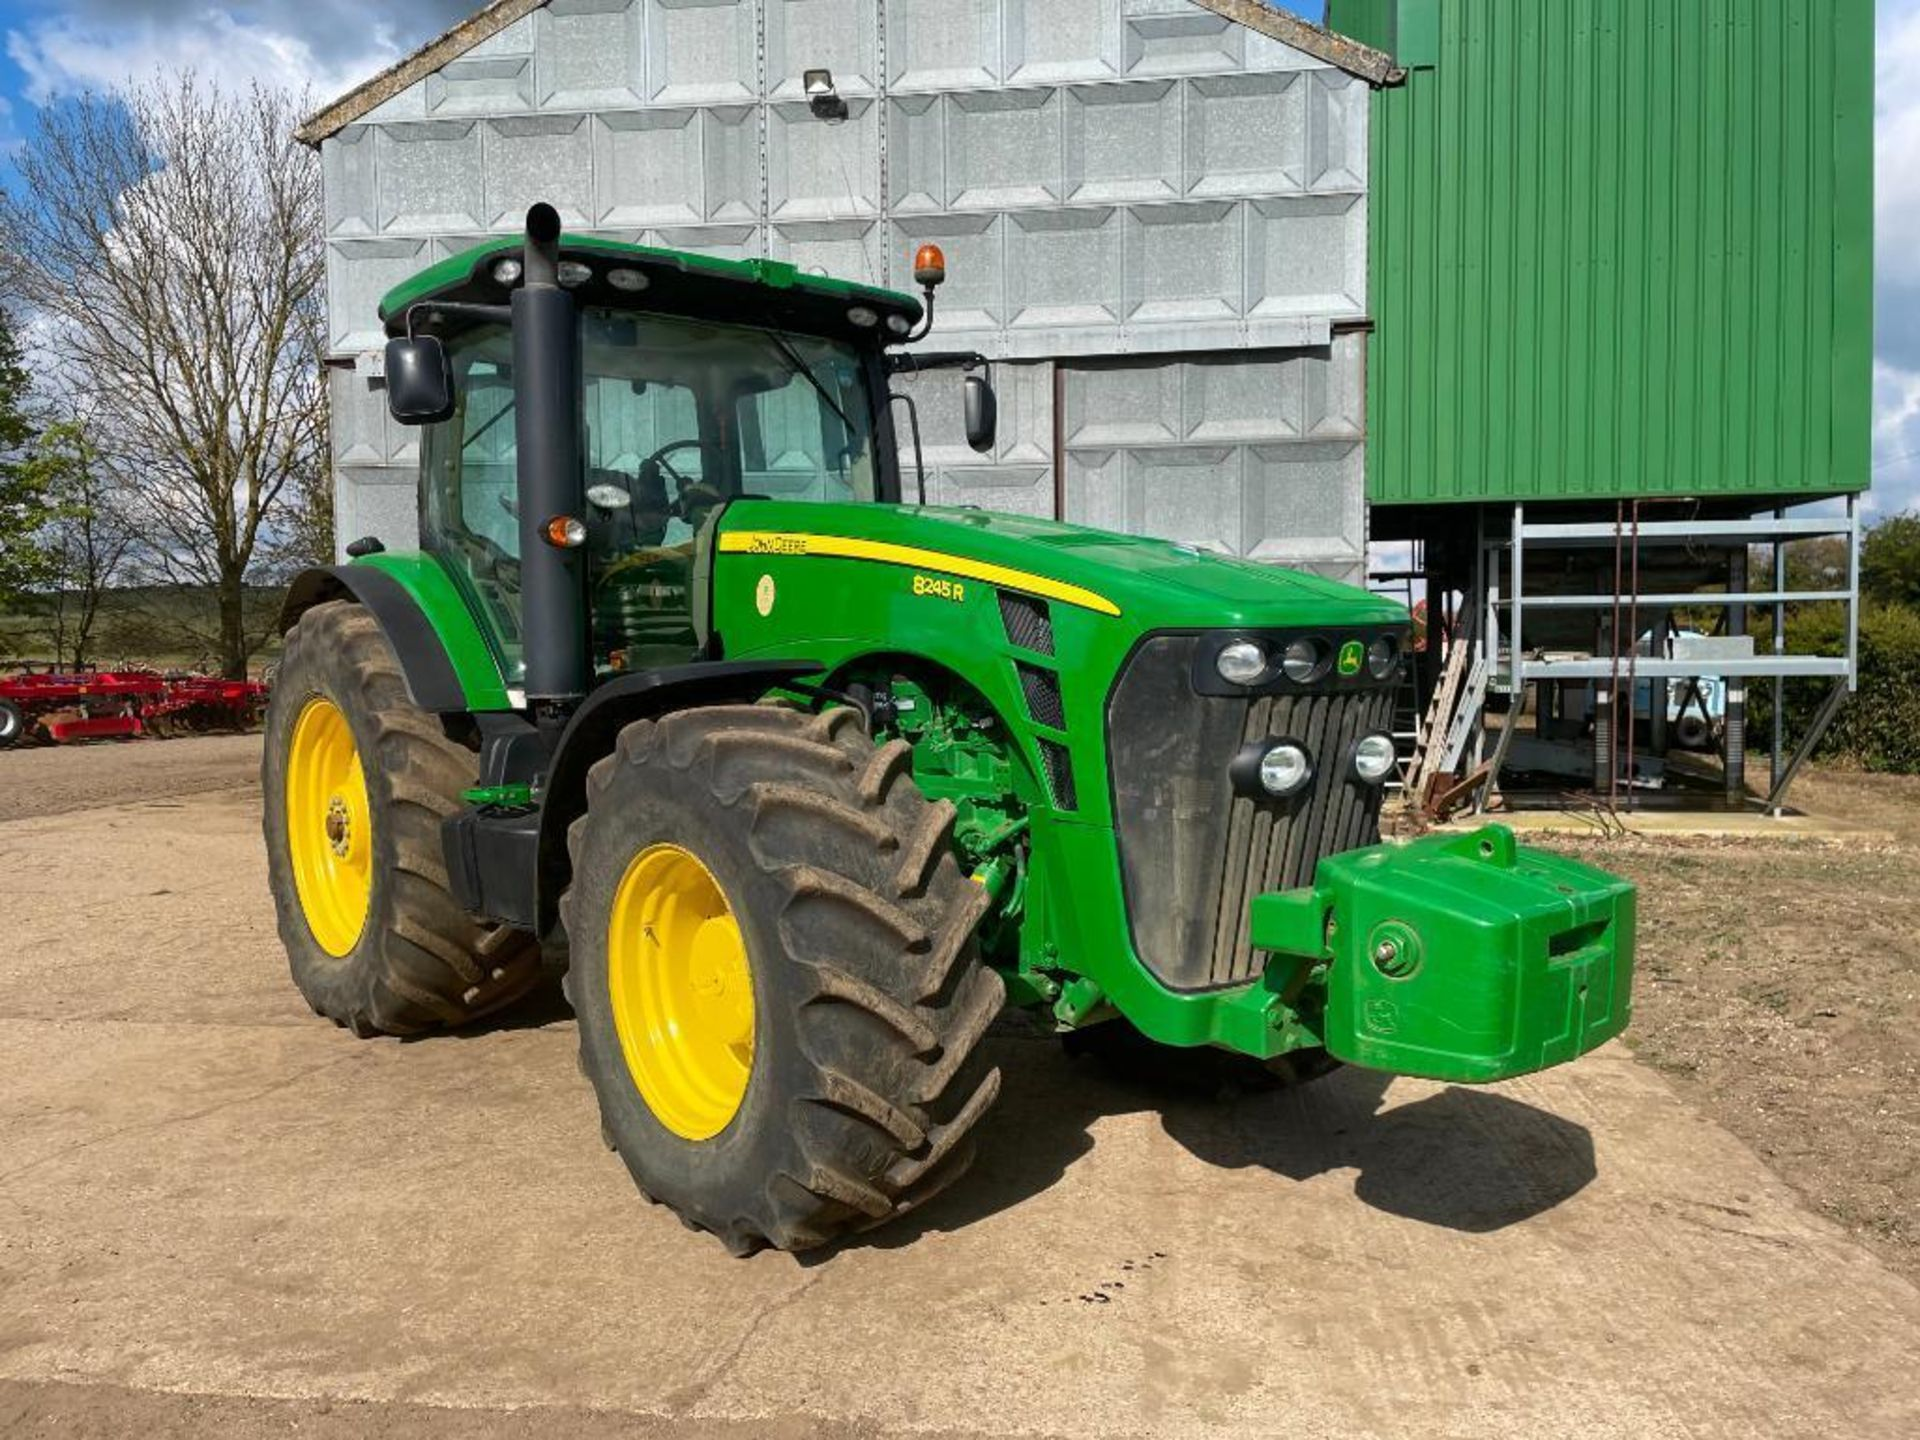 2011 John Deere 8245R 40kph Powershift with 4 electric spools, TLS front suspension and 900kg front - Image 2 of 18